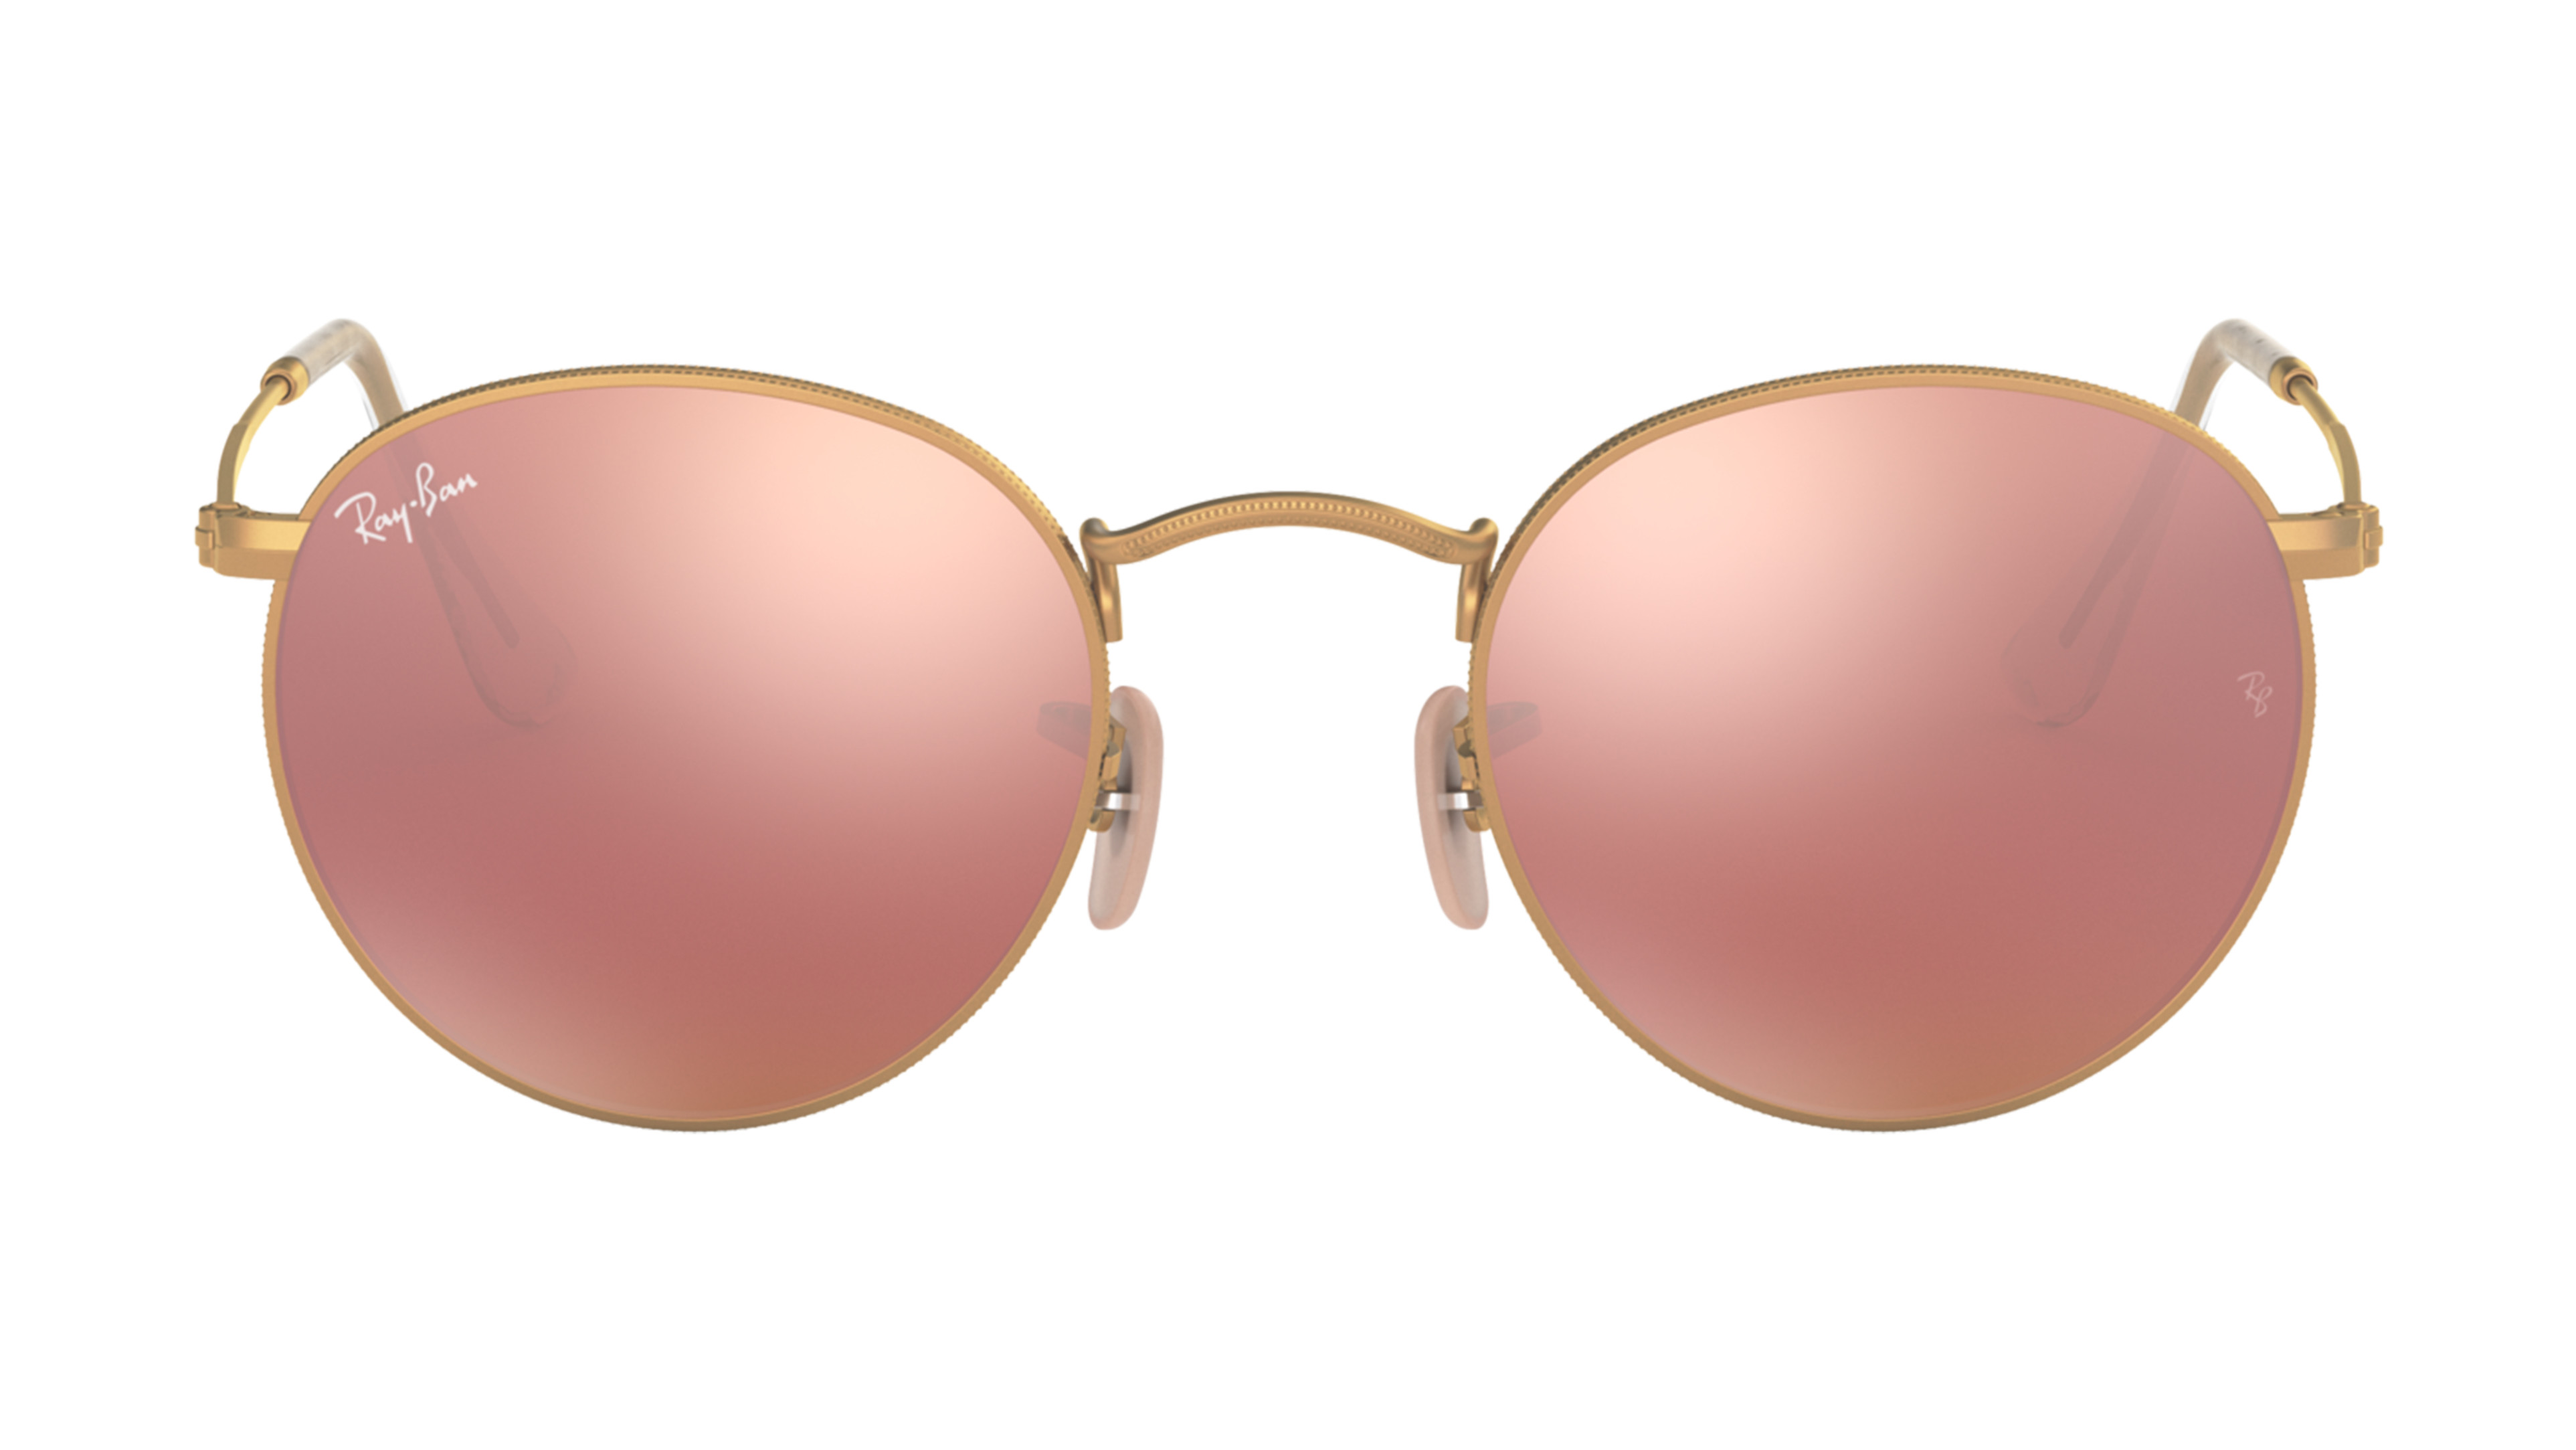 8053672666953-front-Ray-Ban-0RB3447-112-Z2